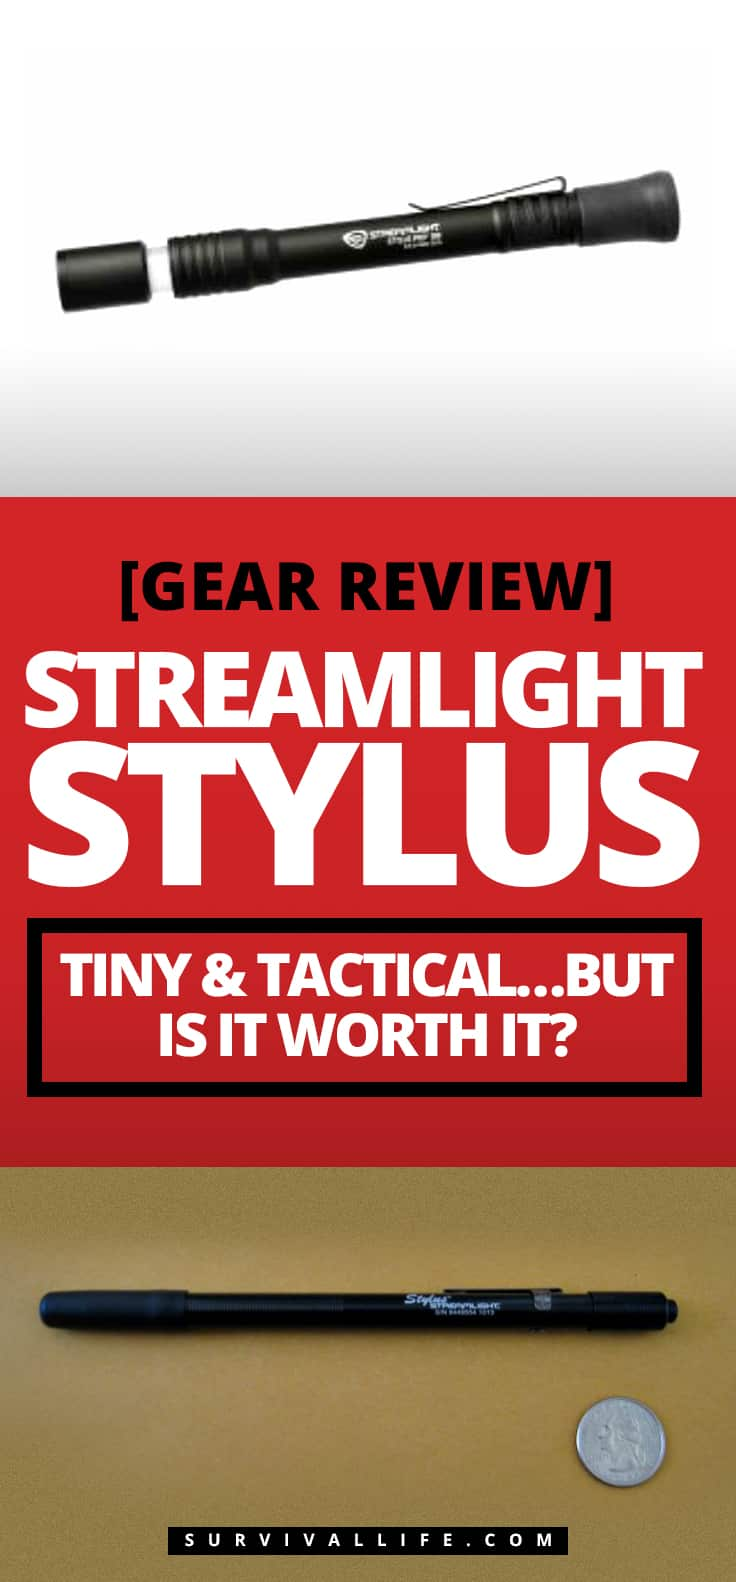 [Gear Review] Streamlight Stylus | Tiny & Tactical…But is it worth it?